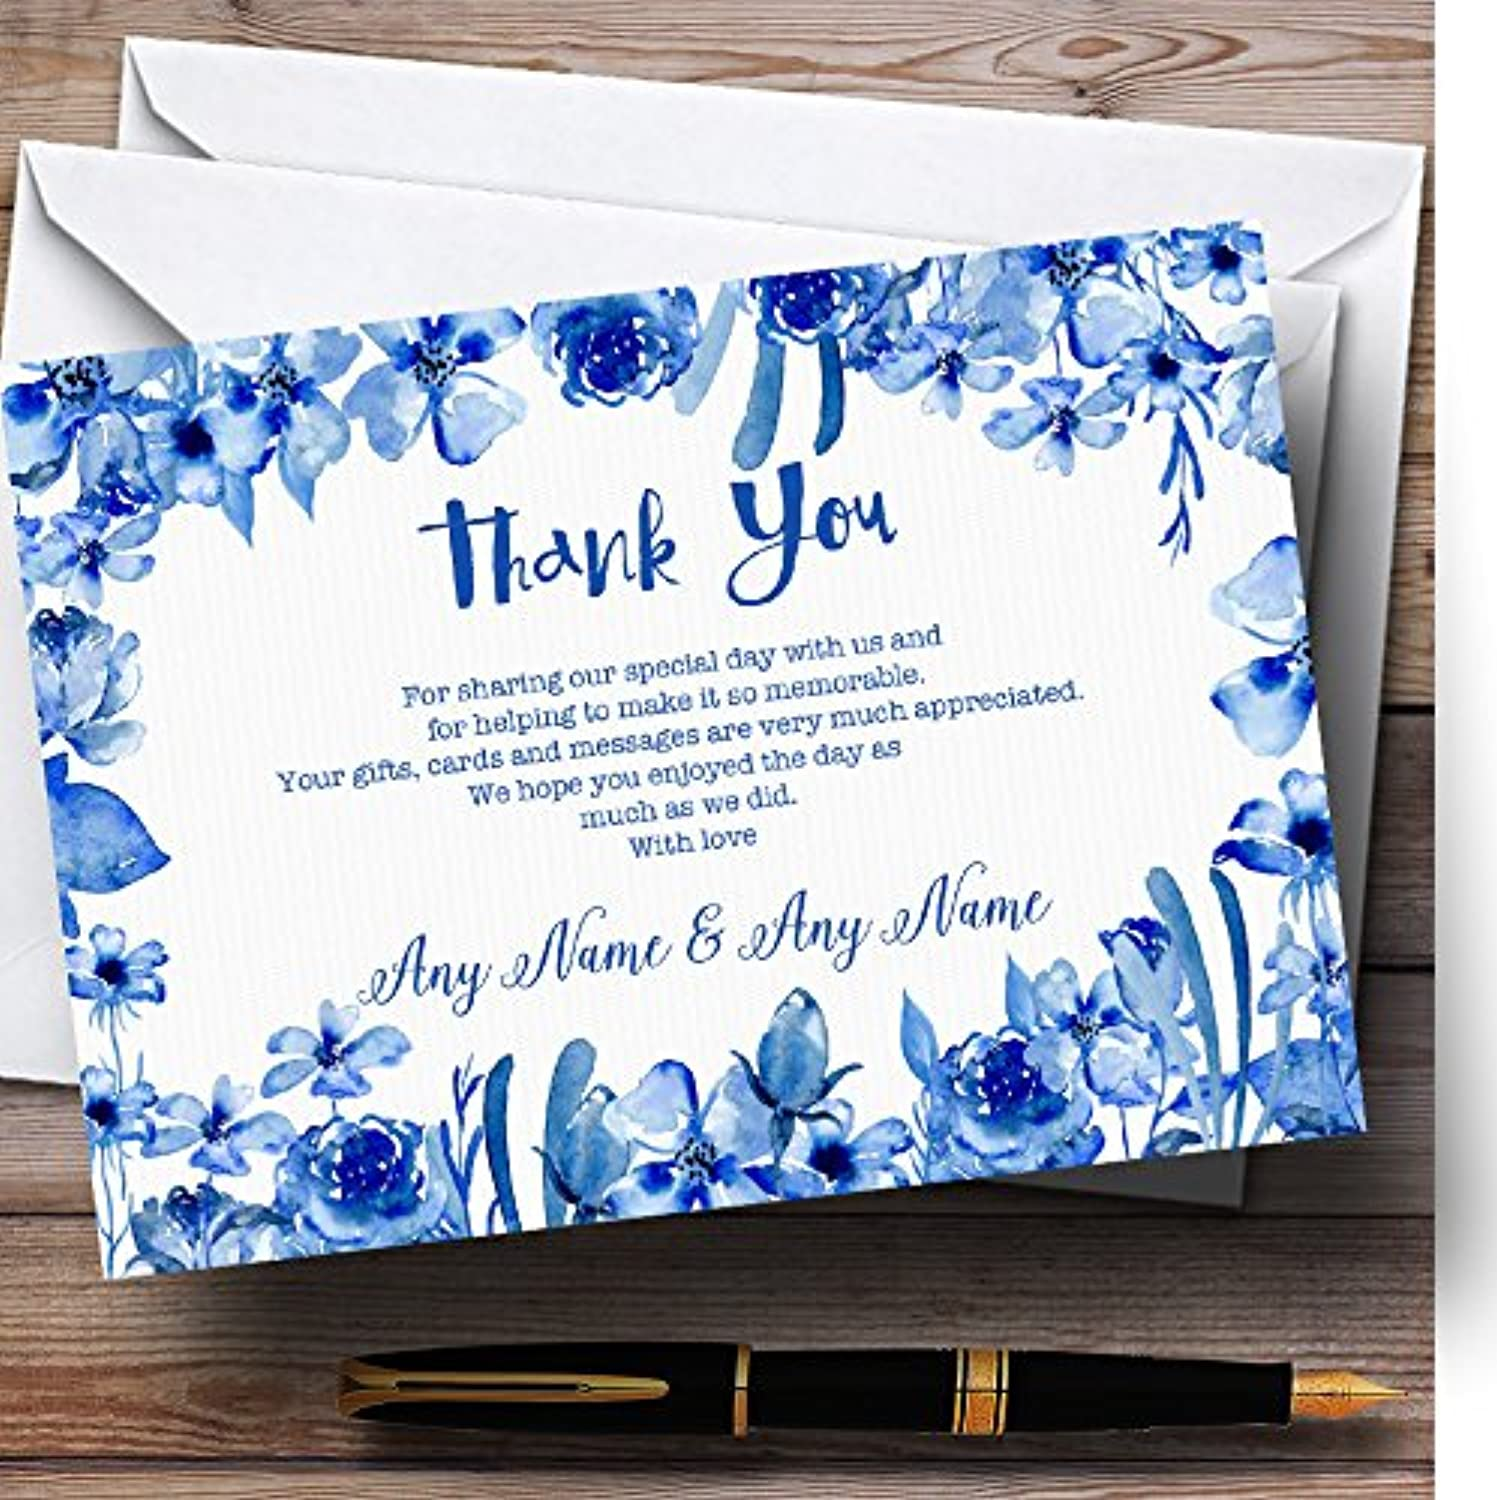 Watercolour Indigo bluee Floral Personalised Wedding Stationery Thank You Cards